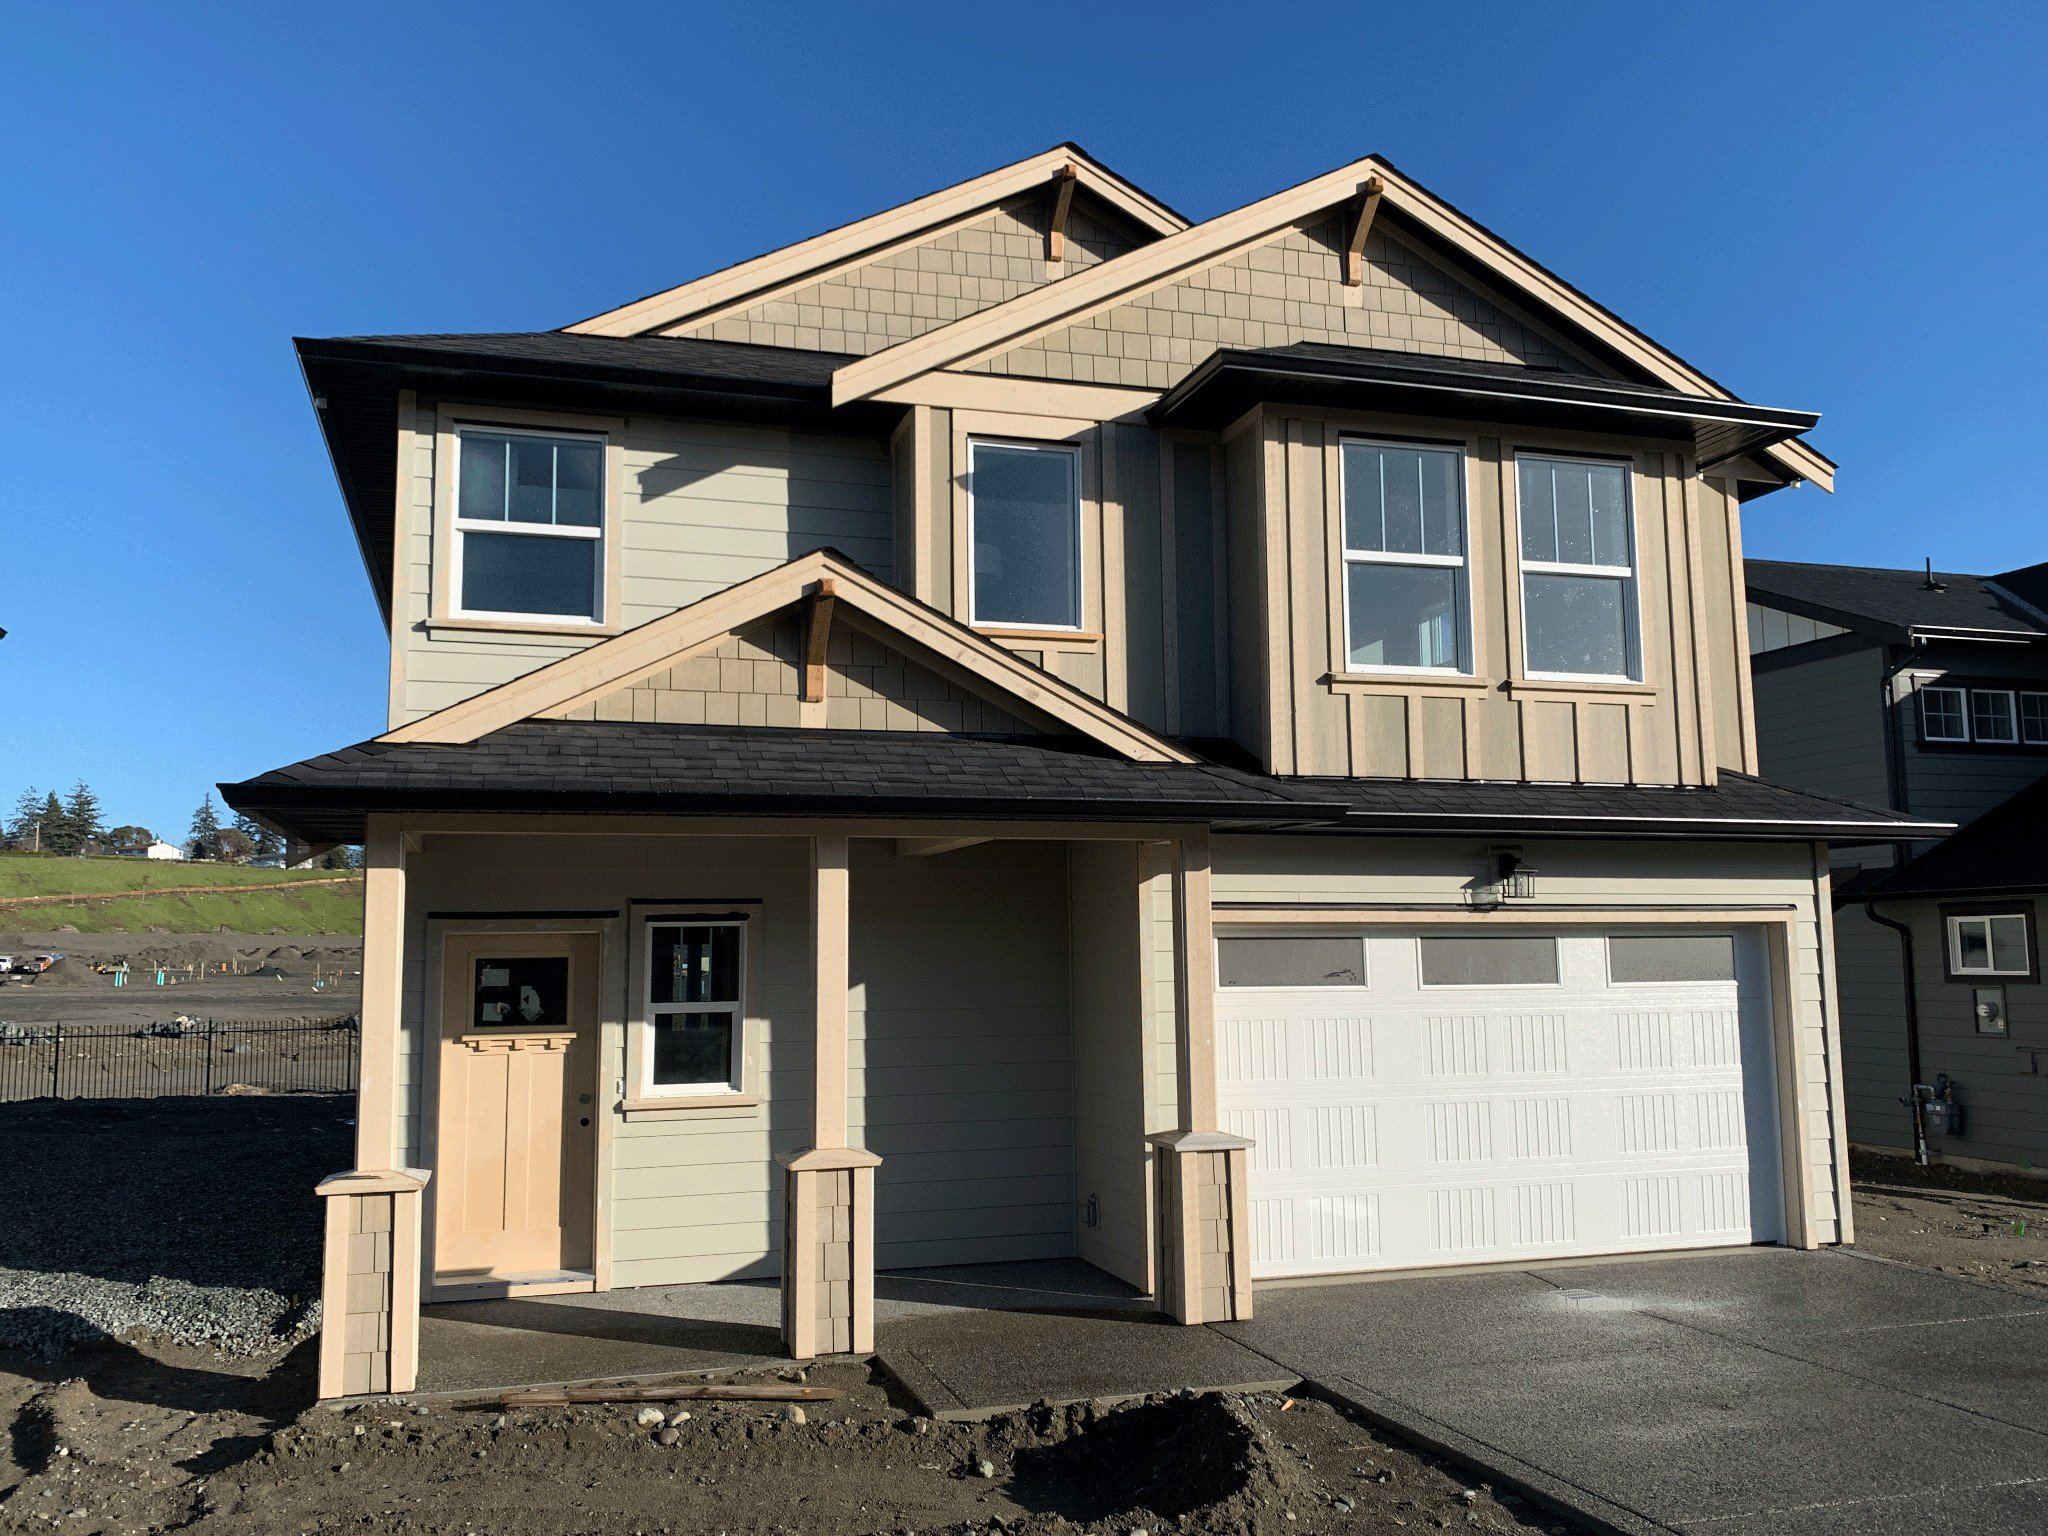 Main Photo: 3435 Sparrowhawk Ave in : Co Royal Bay House for sale (Colwood)  : MLS®# 830937